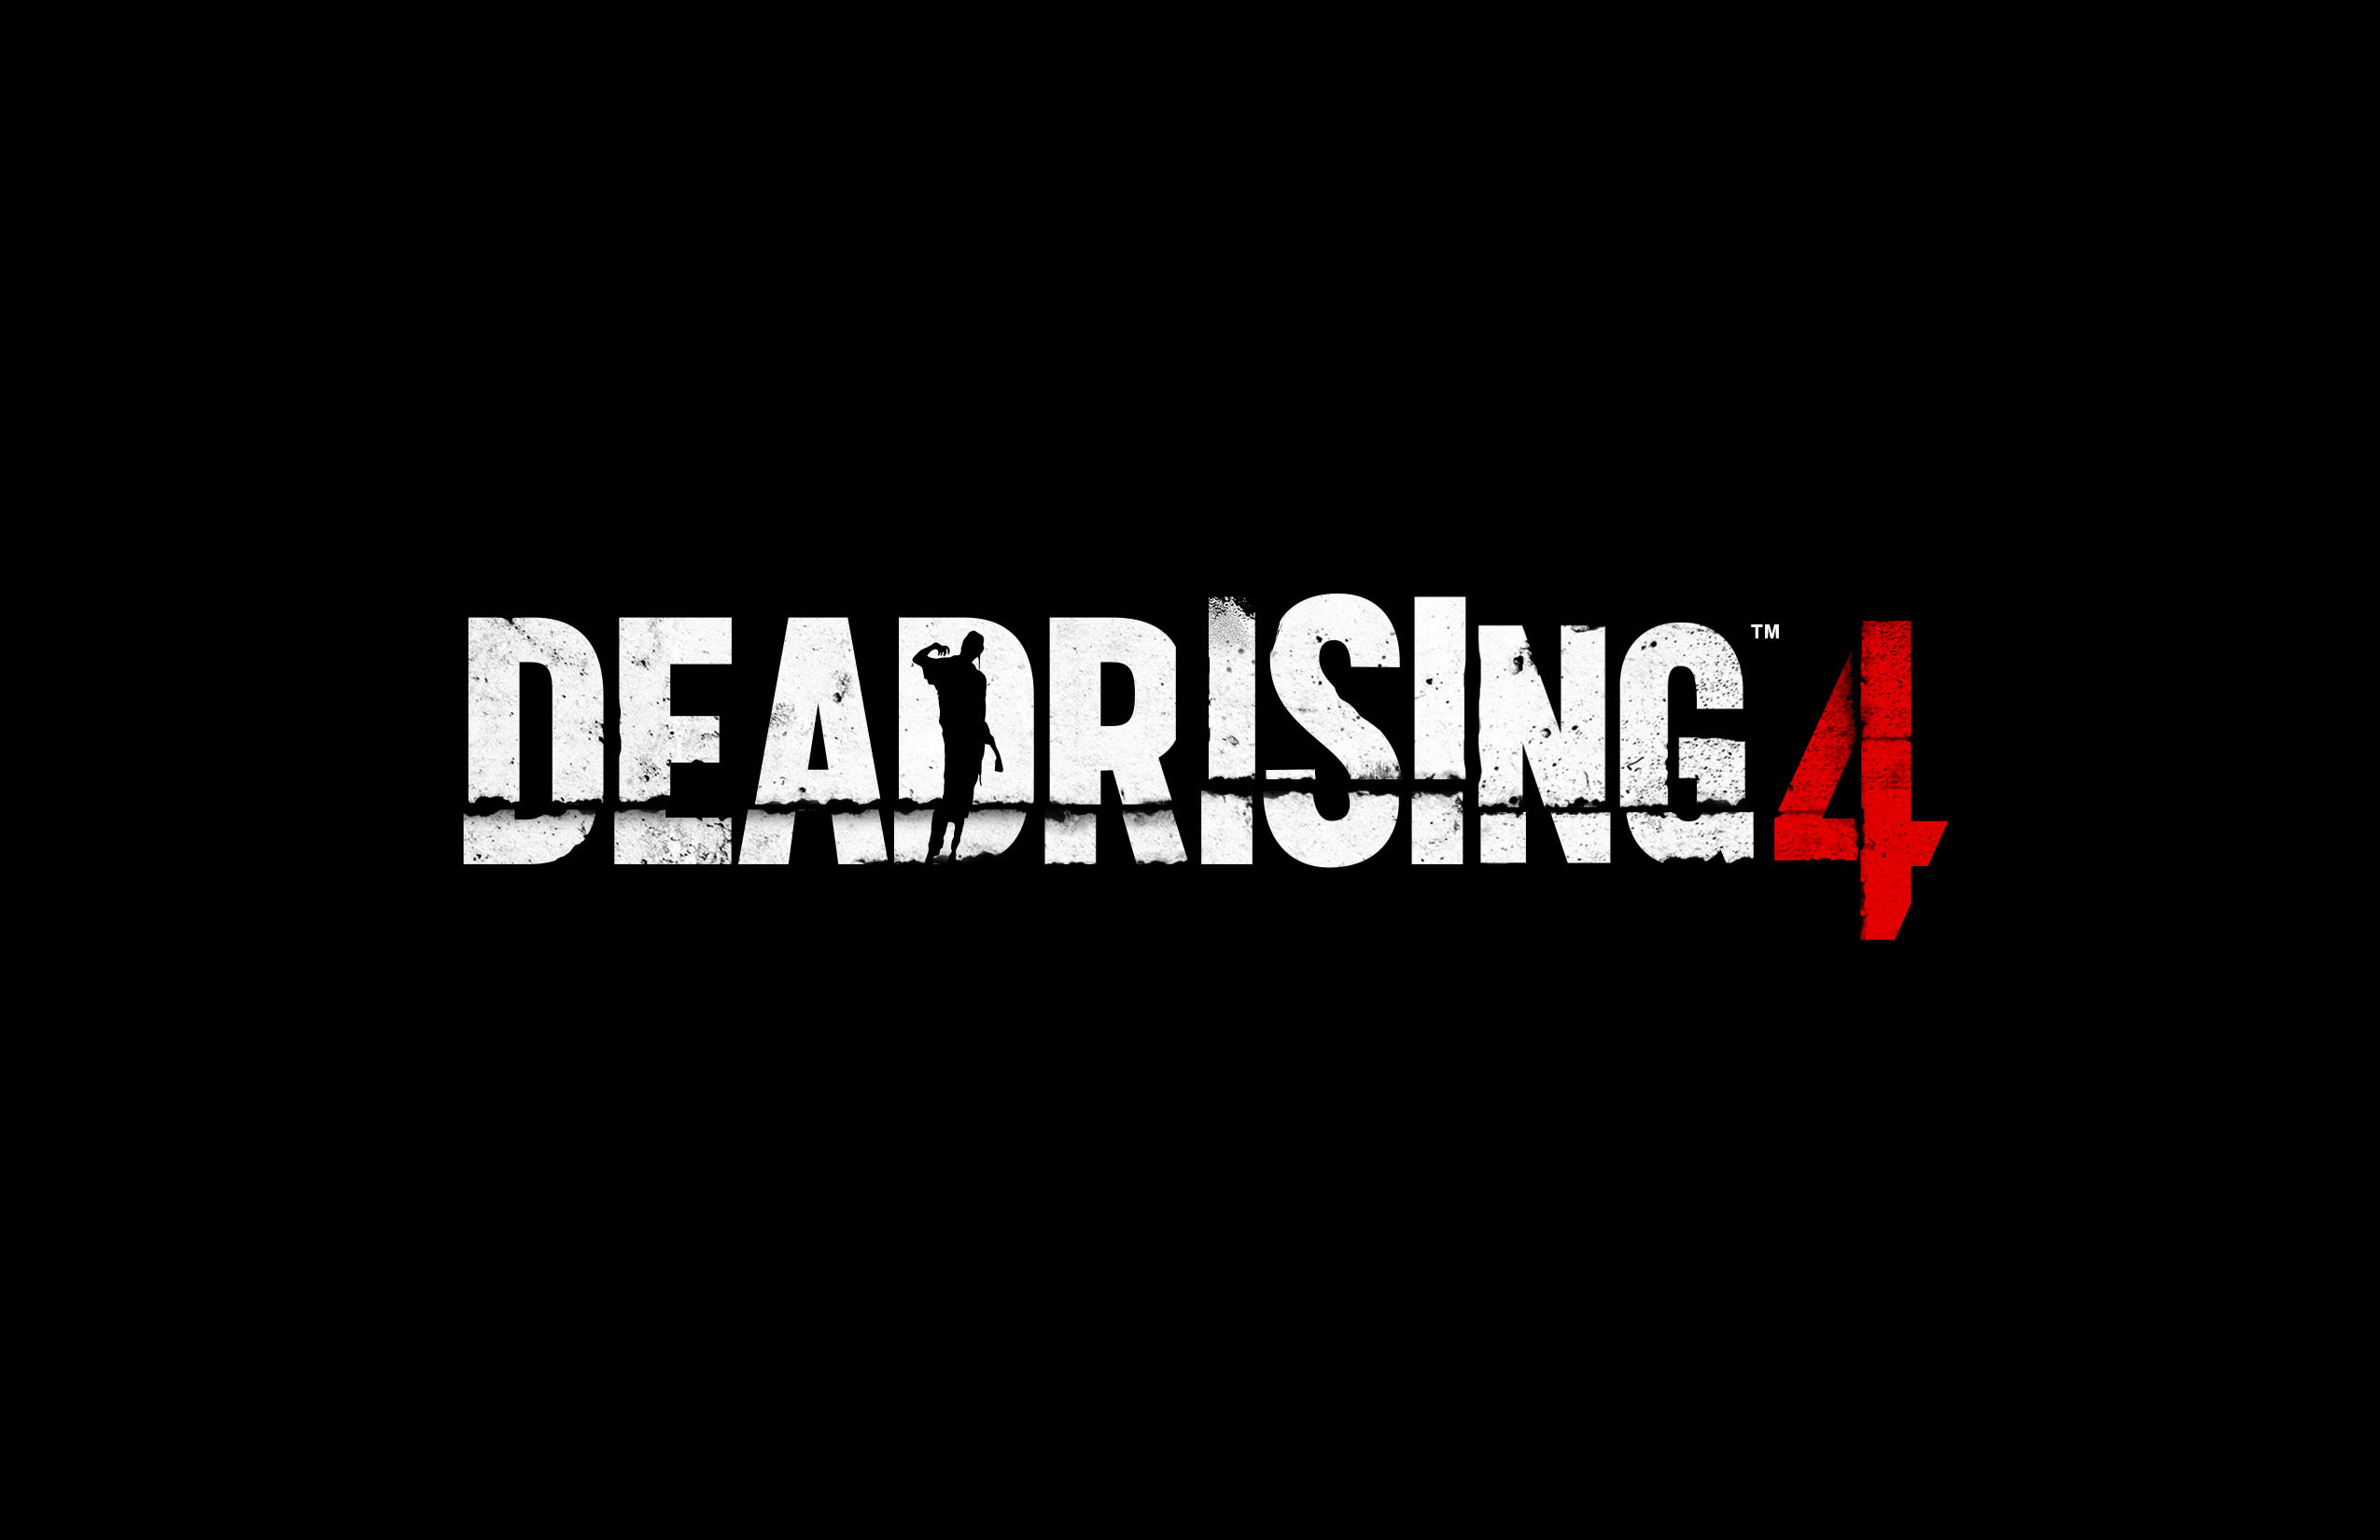 Dead Rising 4 Wallpapers